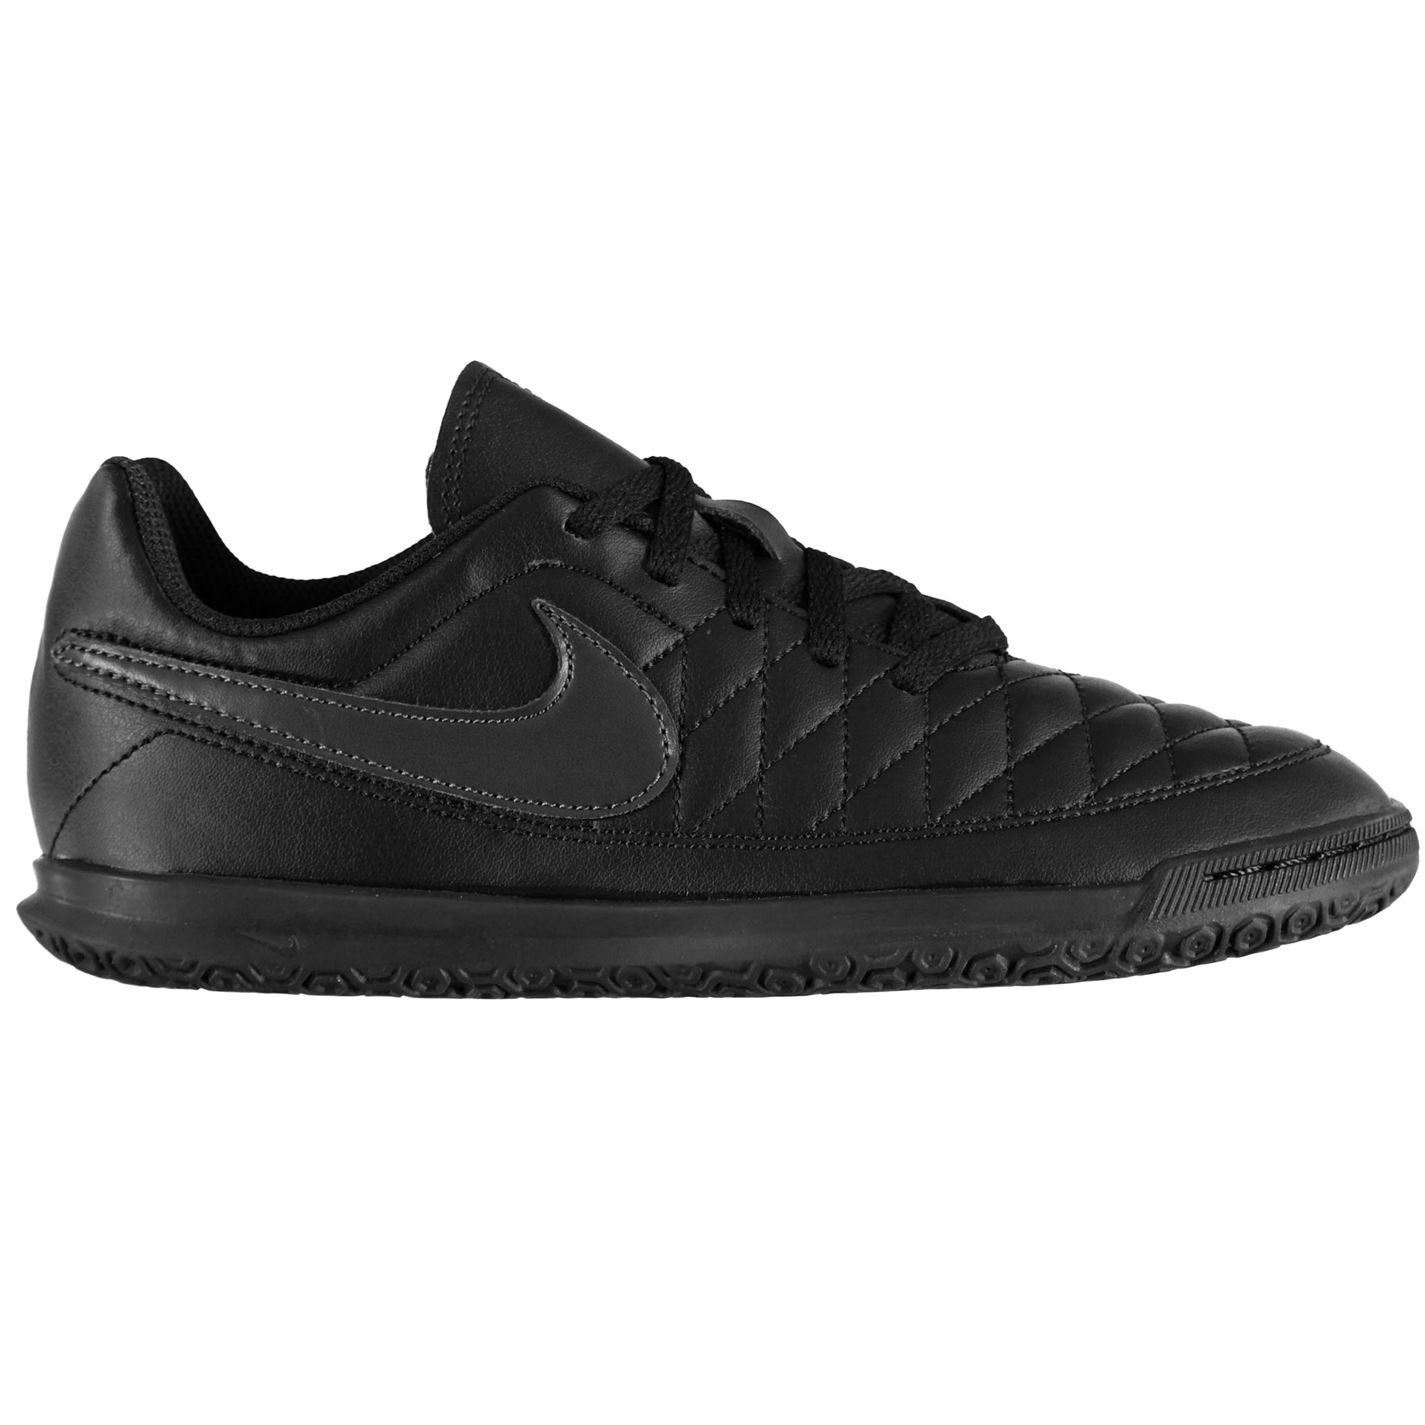 Nike-majestry-Indoor-Court-Football-formateurs-juniors-Football-Baskets-Chaussures miniature 3